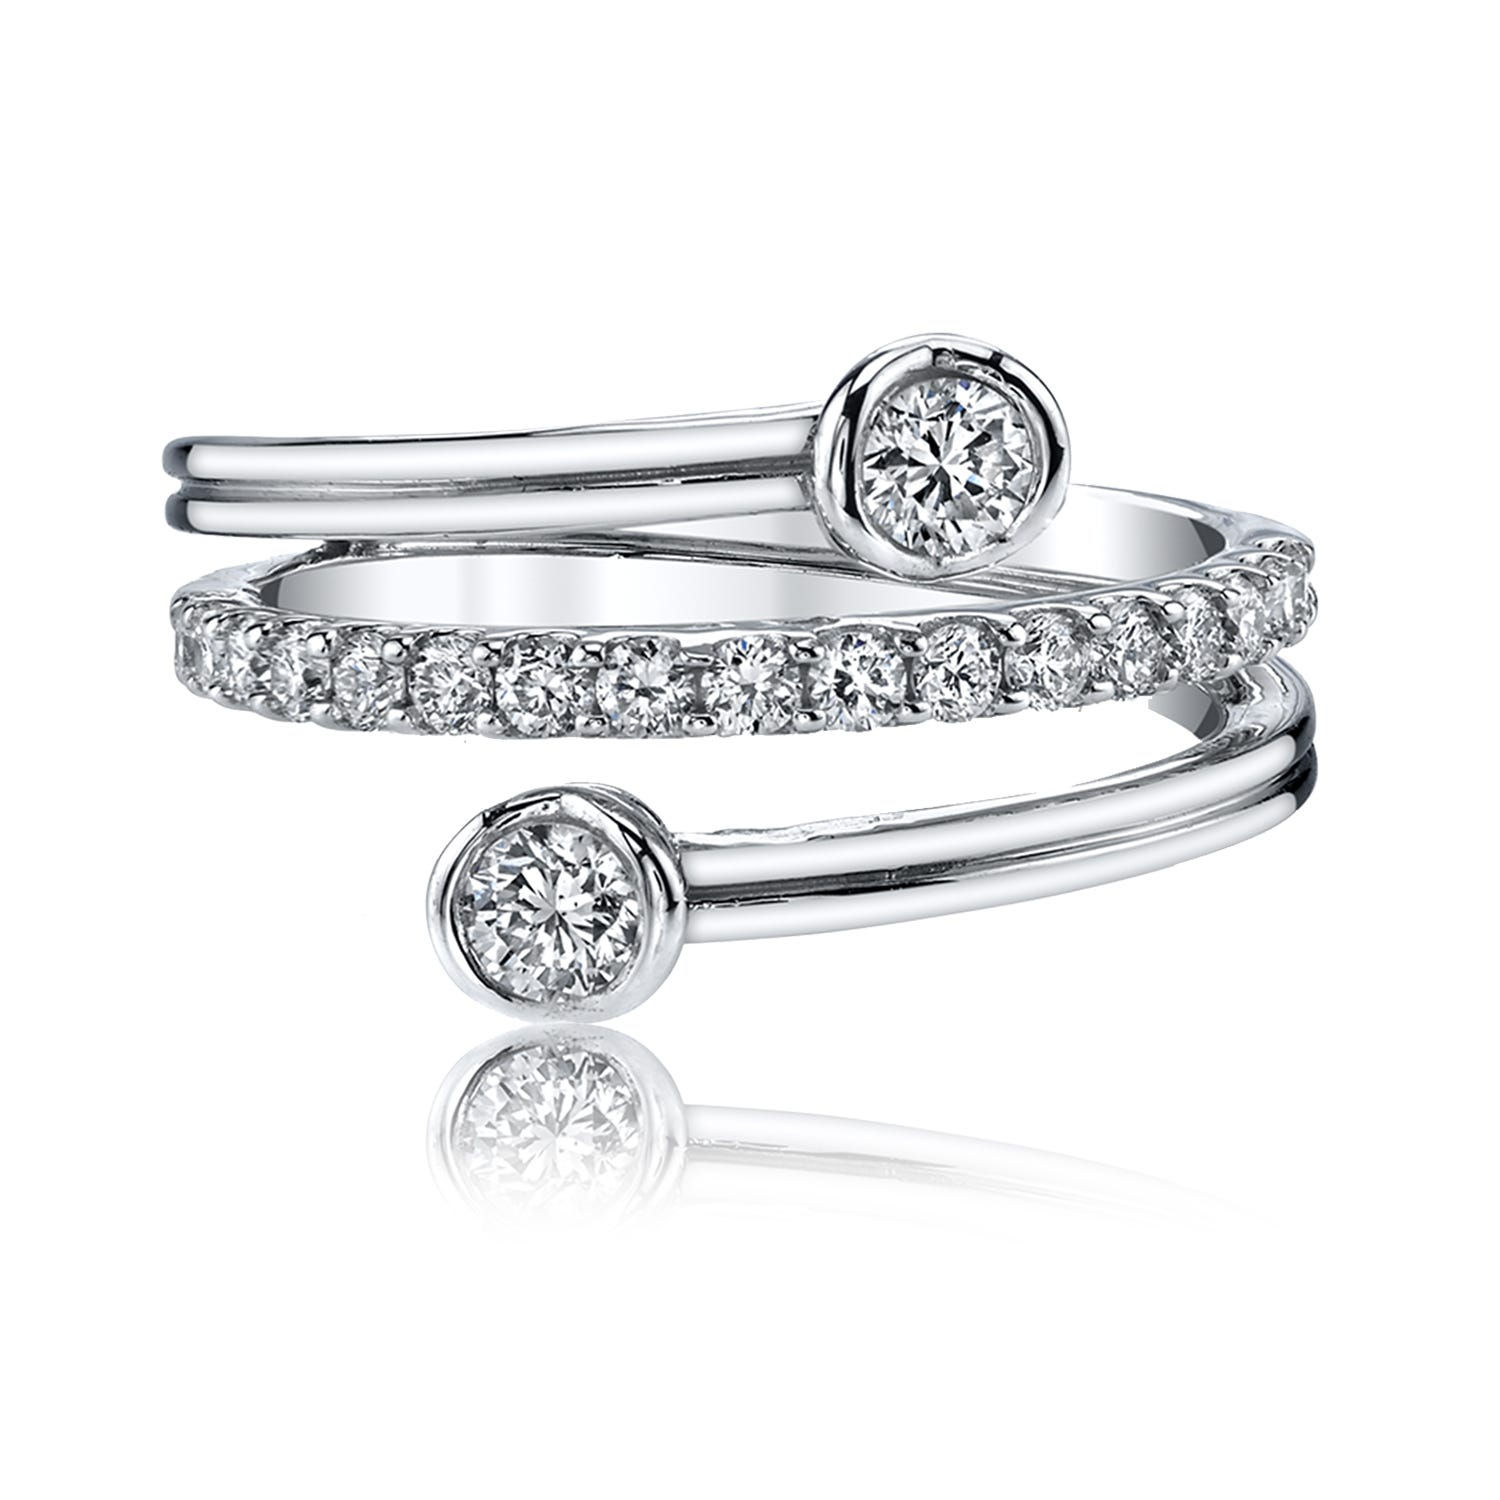 Sirena Diamond Fashion Layered Ring in 14k White Gold